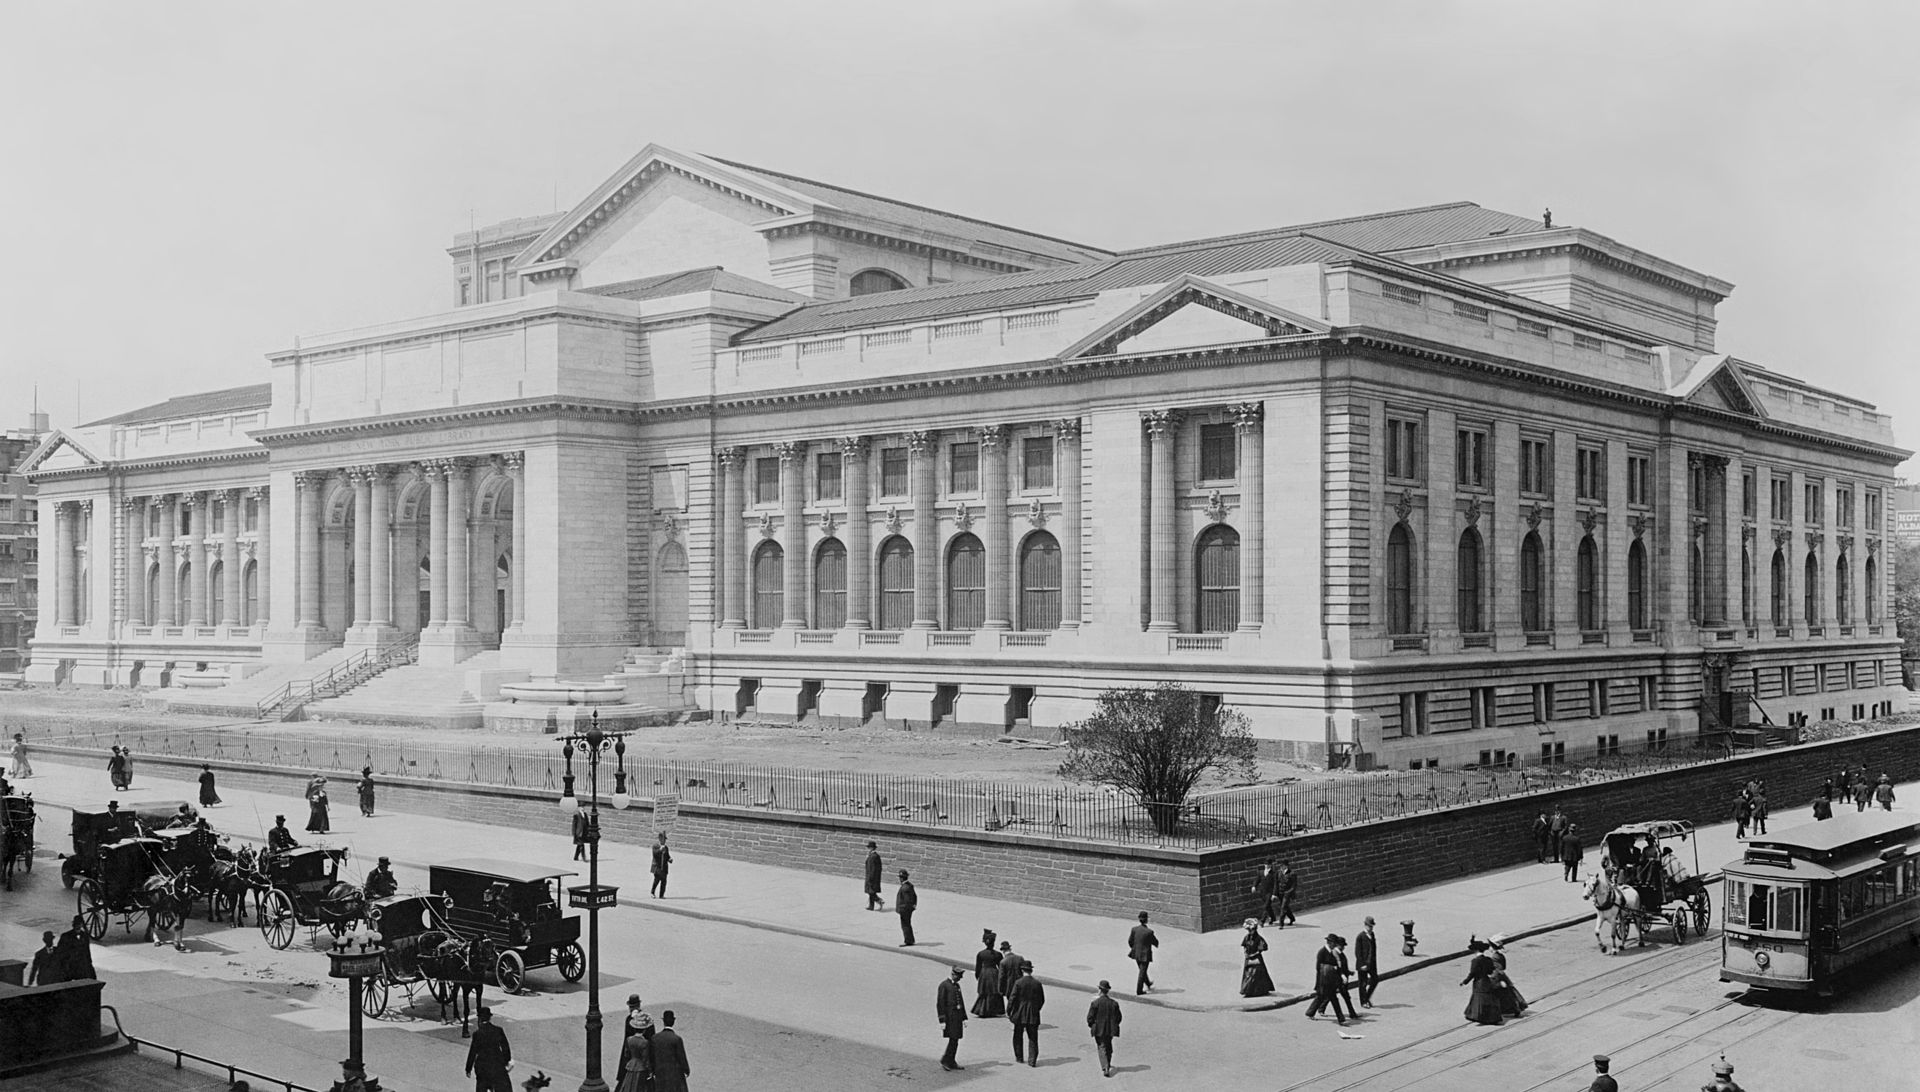 New York Public Library in 1908. Anne Carroll Moore worked in the Children's Room from 1906 to 1941.